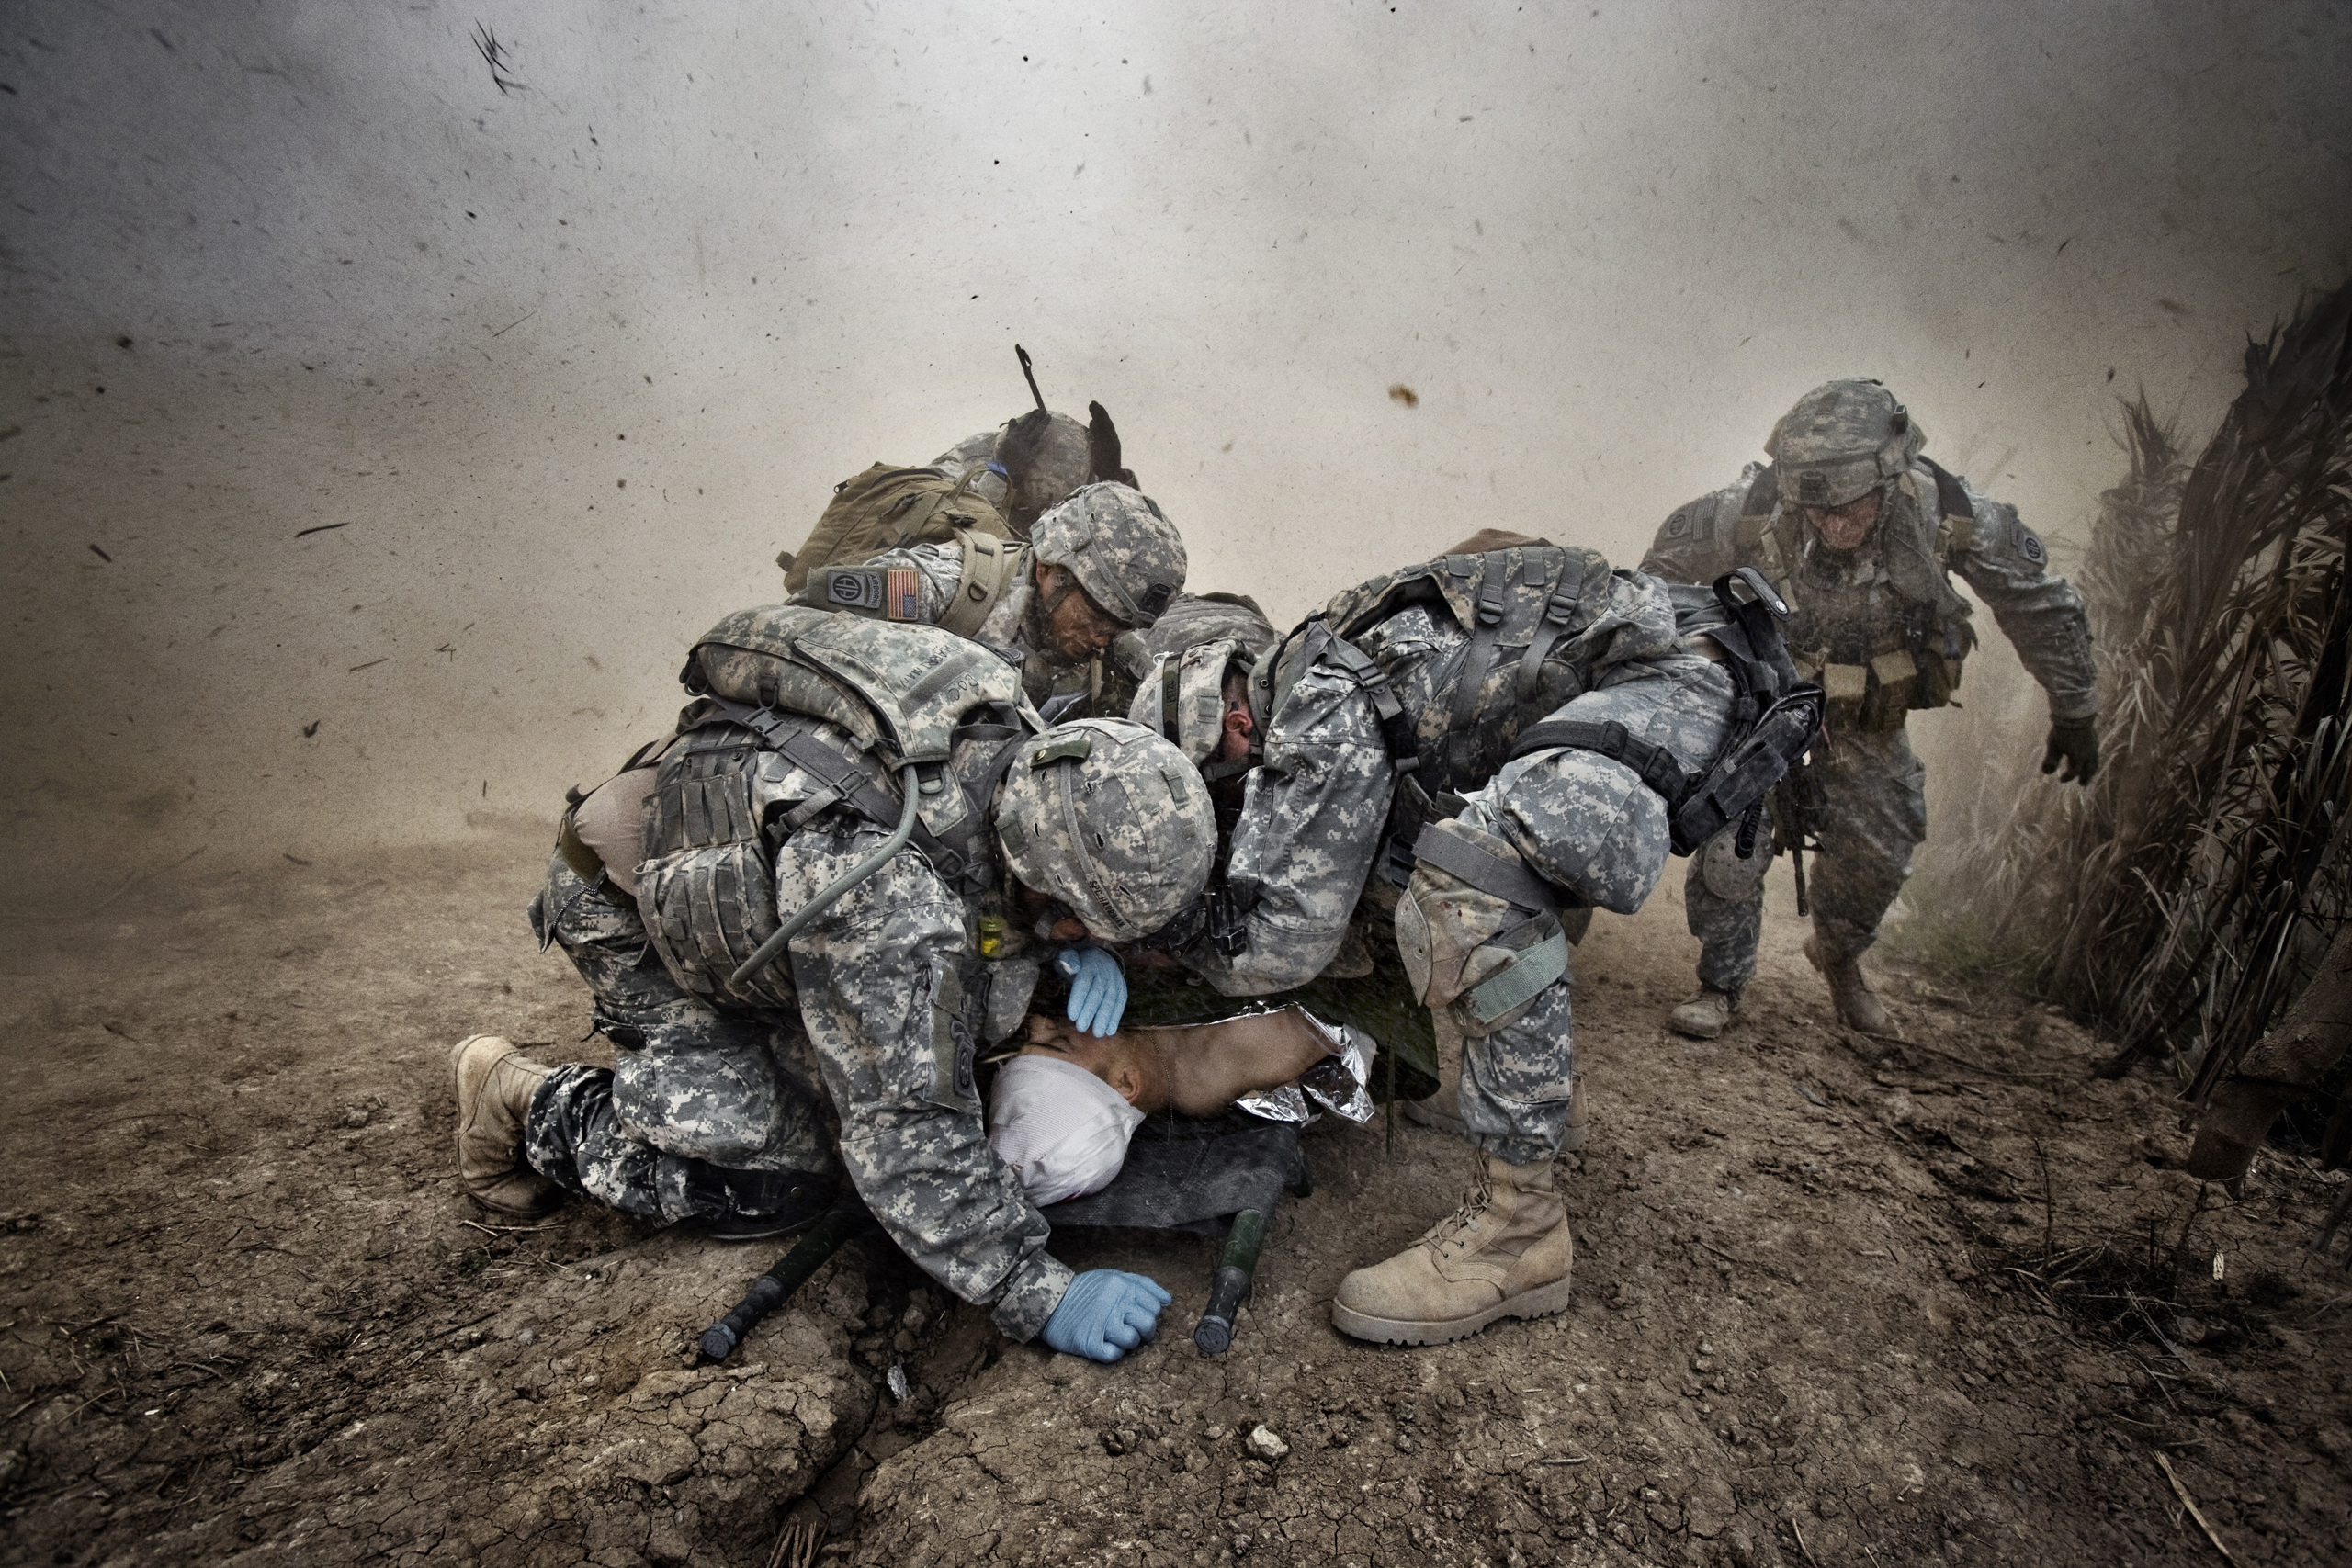 U.S. soldiers shield a wounded comrade from debris kicked up by a rescue helicopter descending on Qubah, Iraq, March 24, 2007. Fighting between U.S. forces and insurgents erupted in the village at dawn, when U.S. troops stormed the city and began house-to-house searches for guerrilla fighters. Two U.S. troops were wounded in the clashes. Sixteen suspected insurgents were killed.